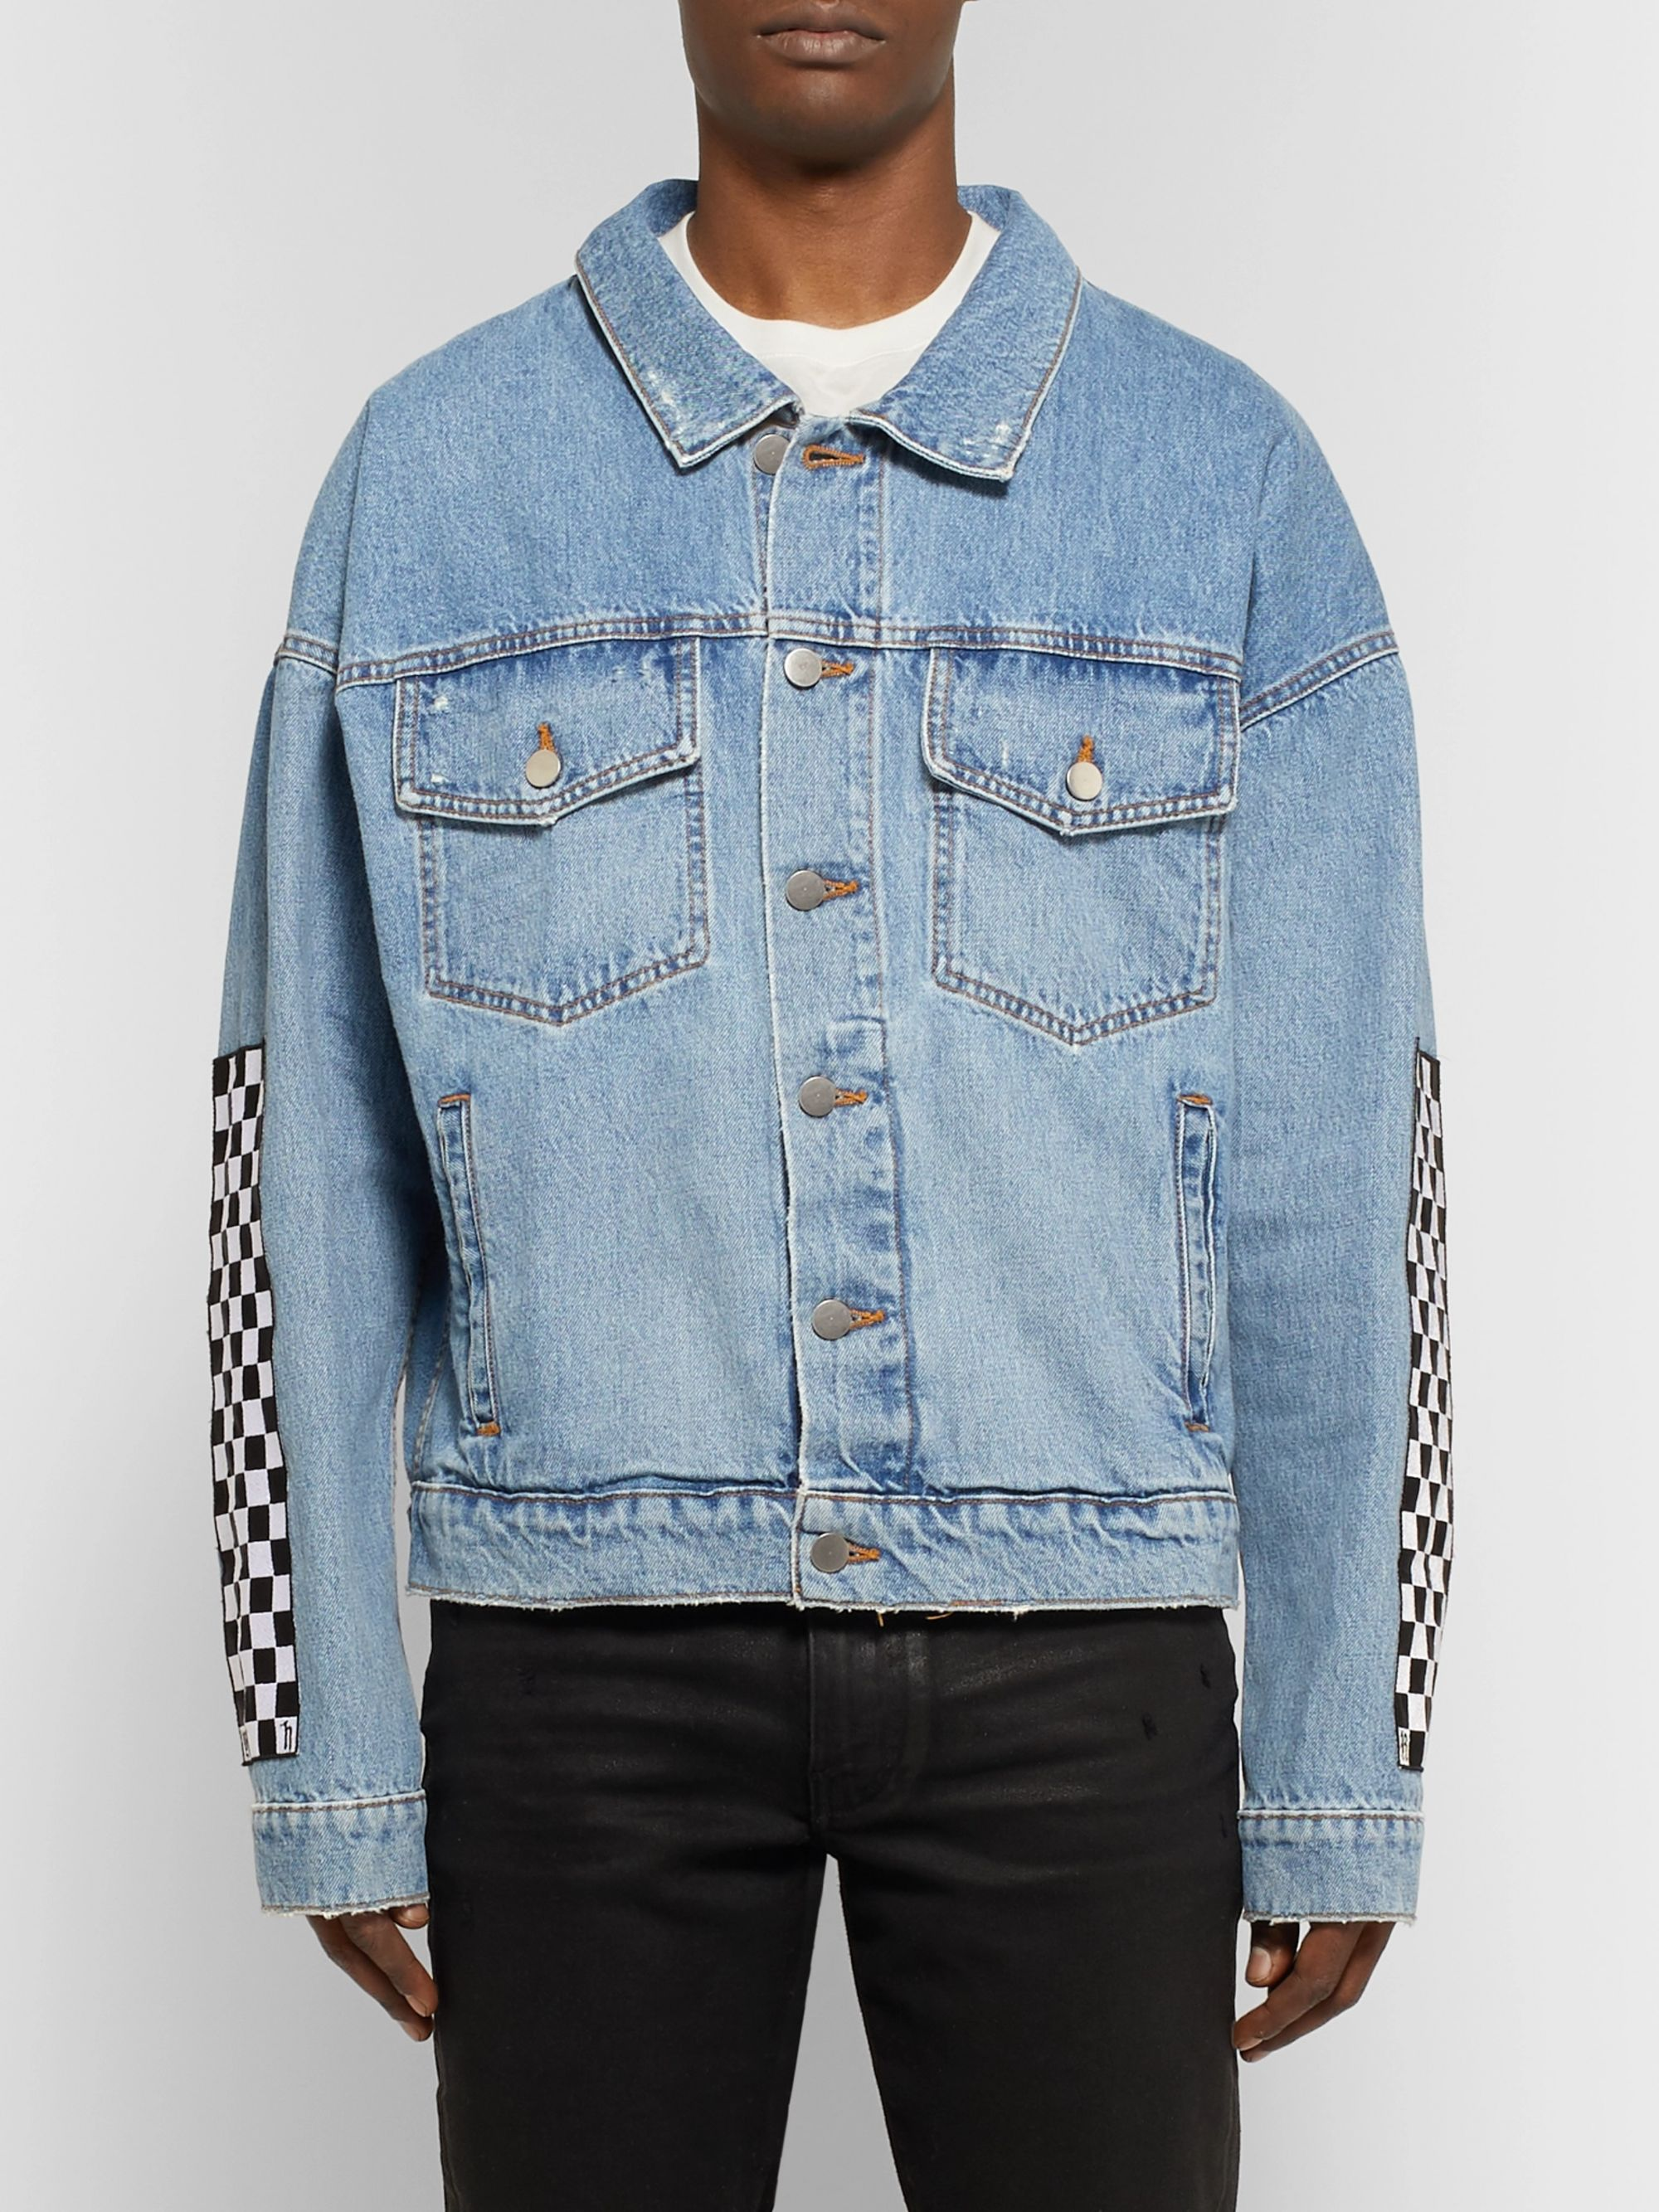 Rhude + Levi's Appliquéd Denim Trucker Jacket